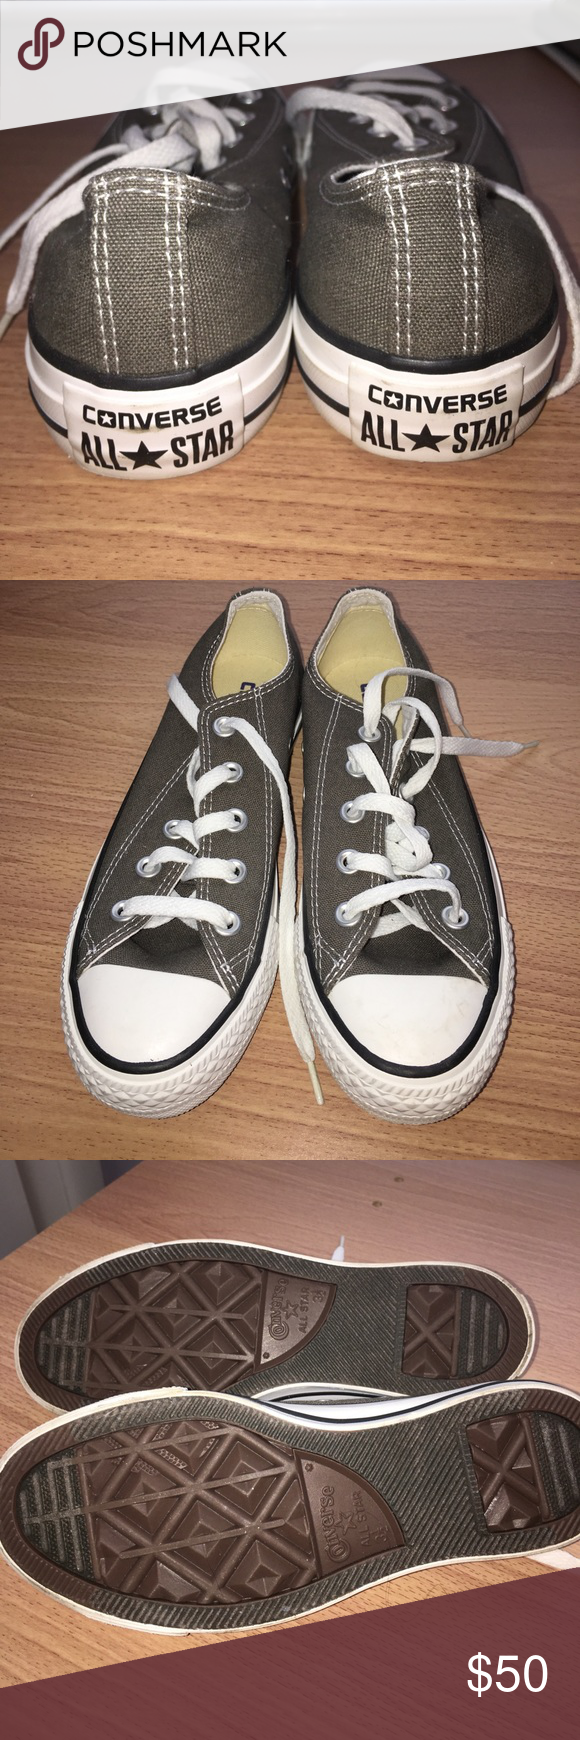 aae815b0f1a Gray women s converse size 5.5 worn 1x like new Gray women s converse size  5.5 worn 1x like new Converse Shoes Sneakers